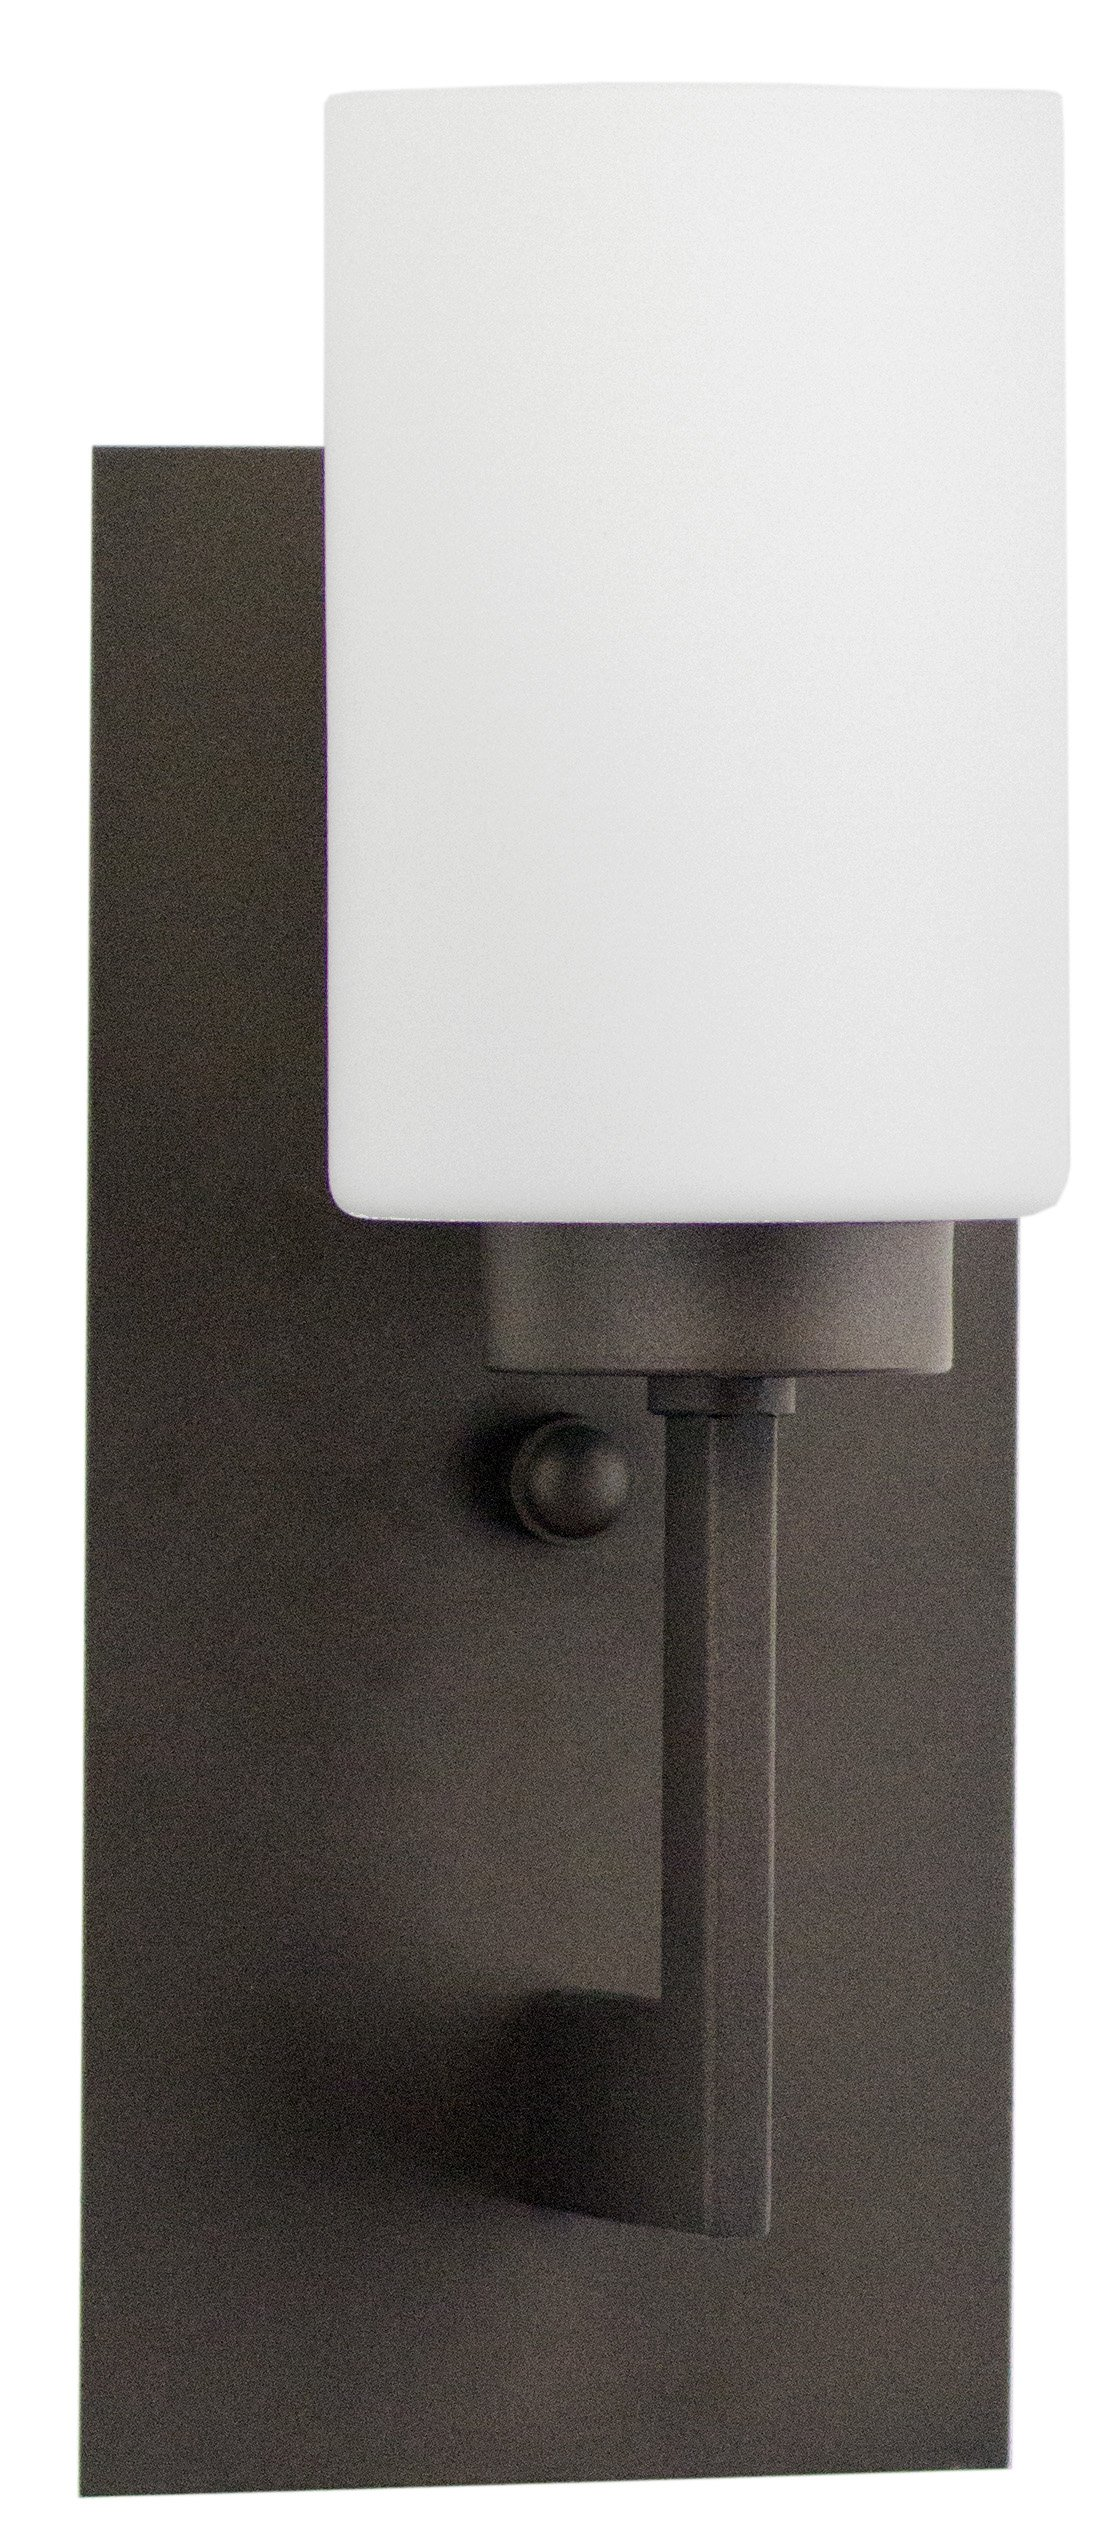 Brio Wall Sconce Light Fixture – Bronze w/ Frosted Glass Shade - Linea di Liara LL-WL151-DB